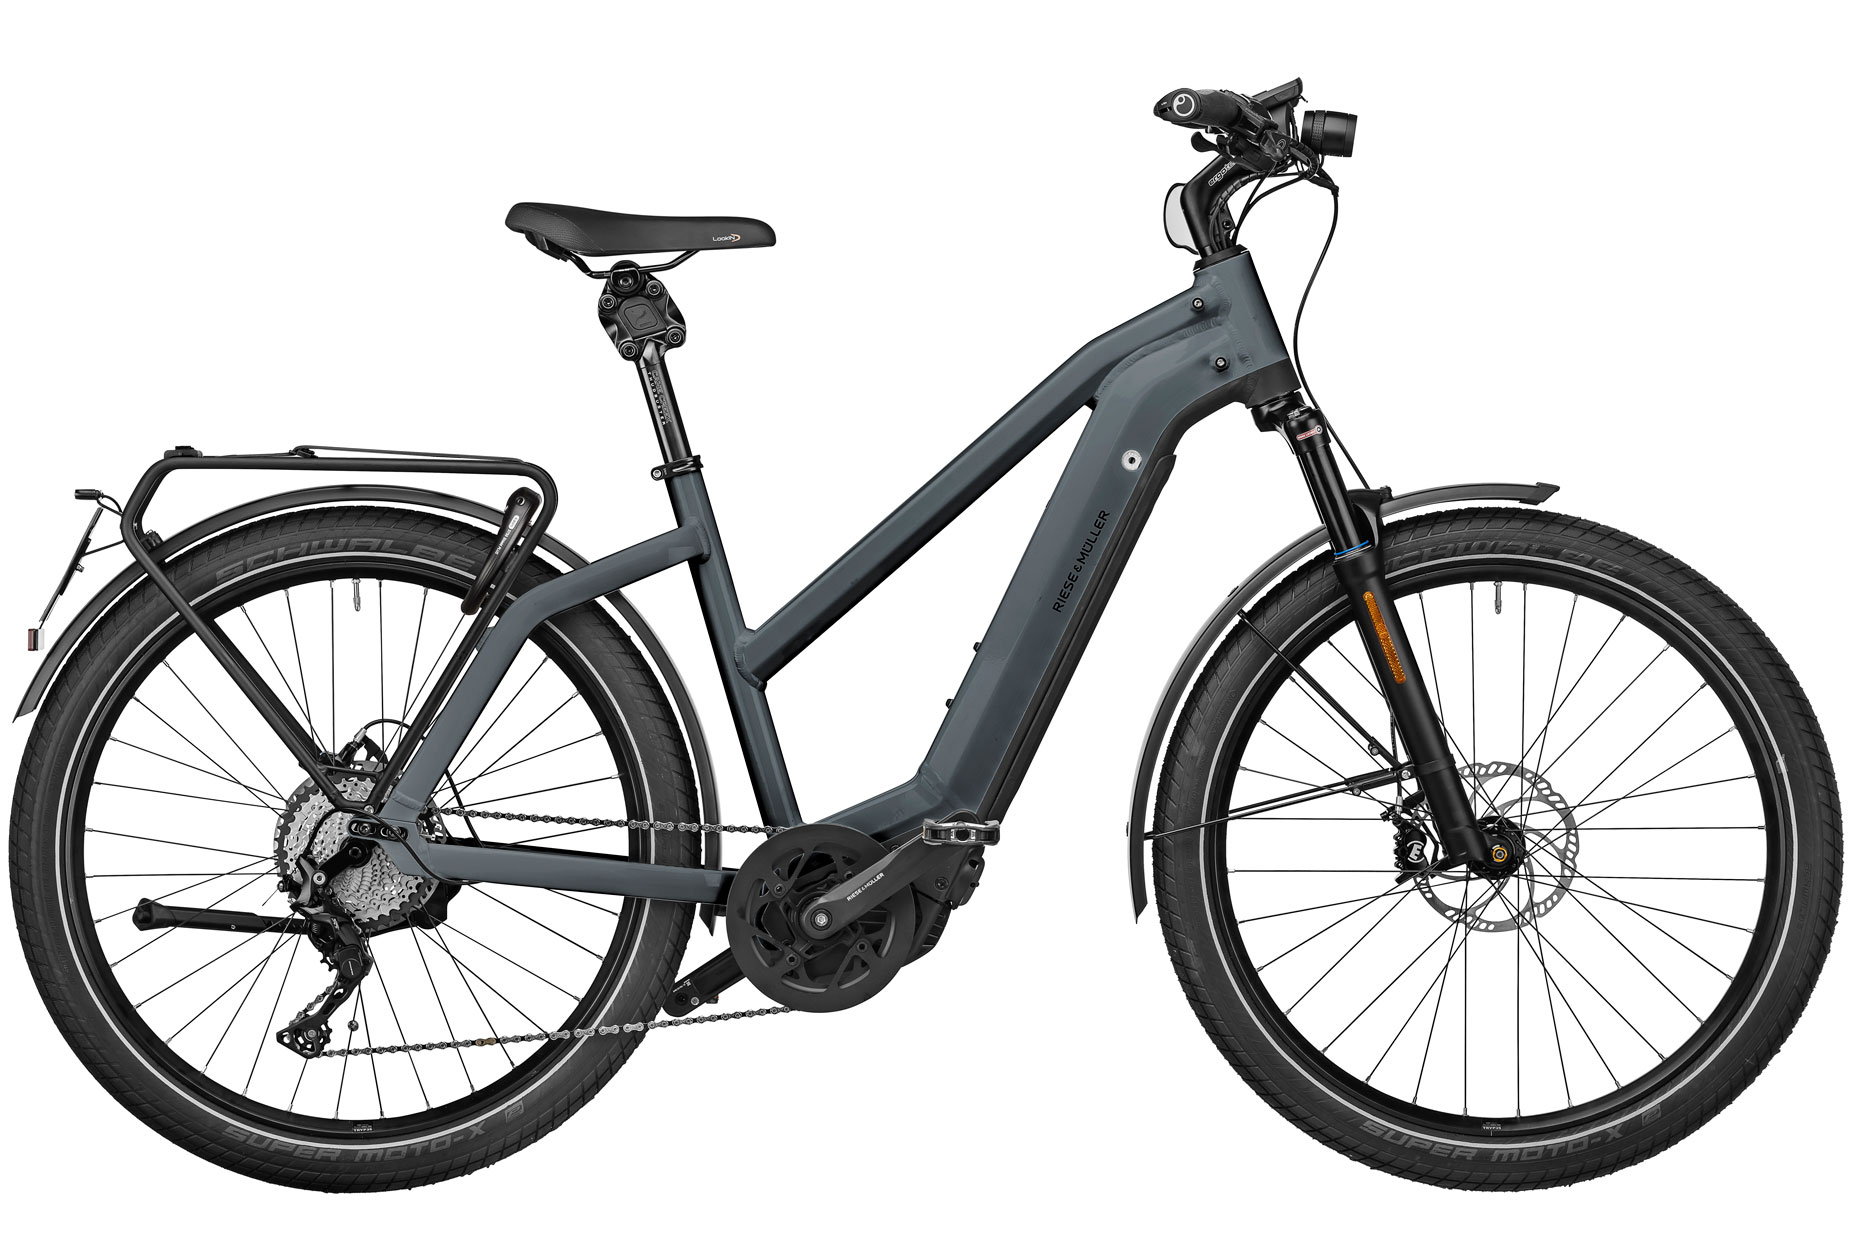 2021 Riese and Muller Charger3 Mixte GT Touring HS Electric Bike